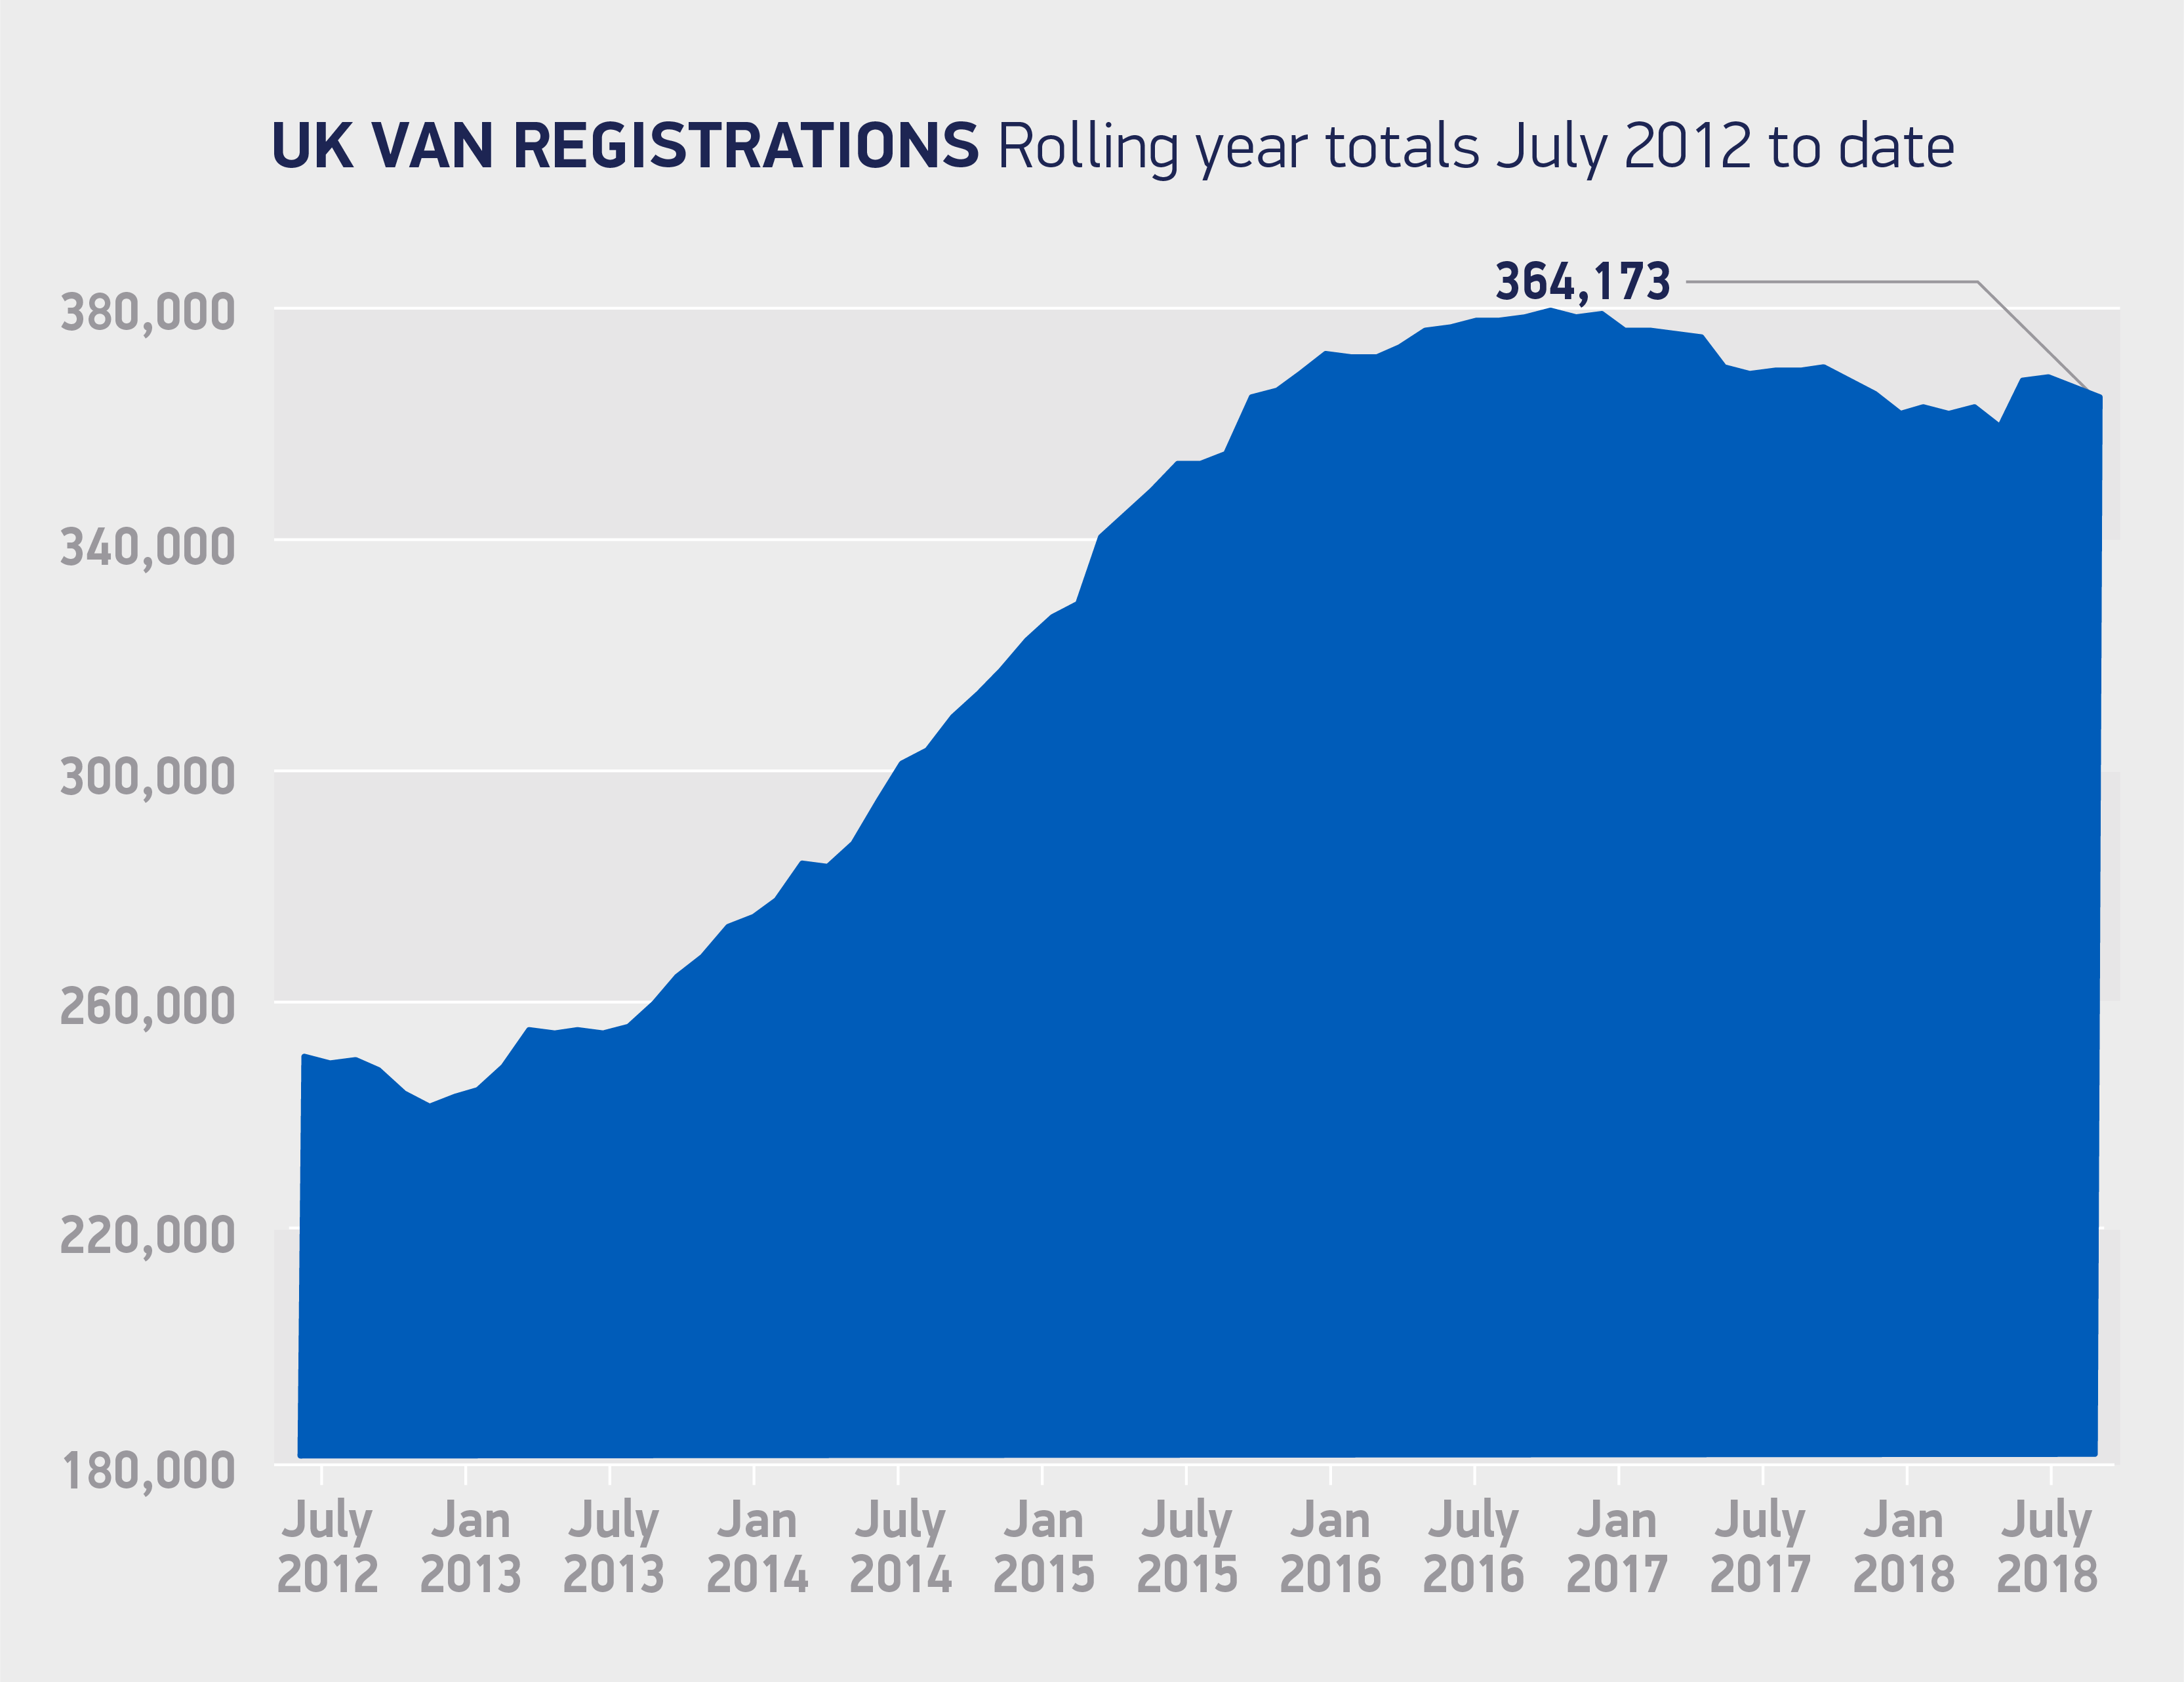 Van registrations rolling year totals July 2012 to-date 2018 chart